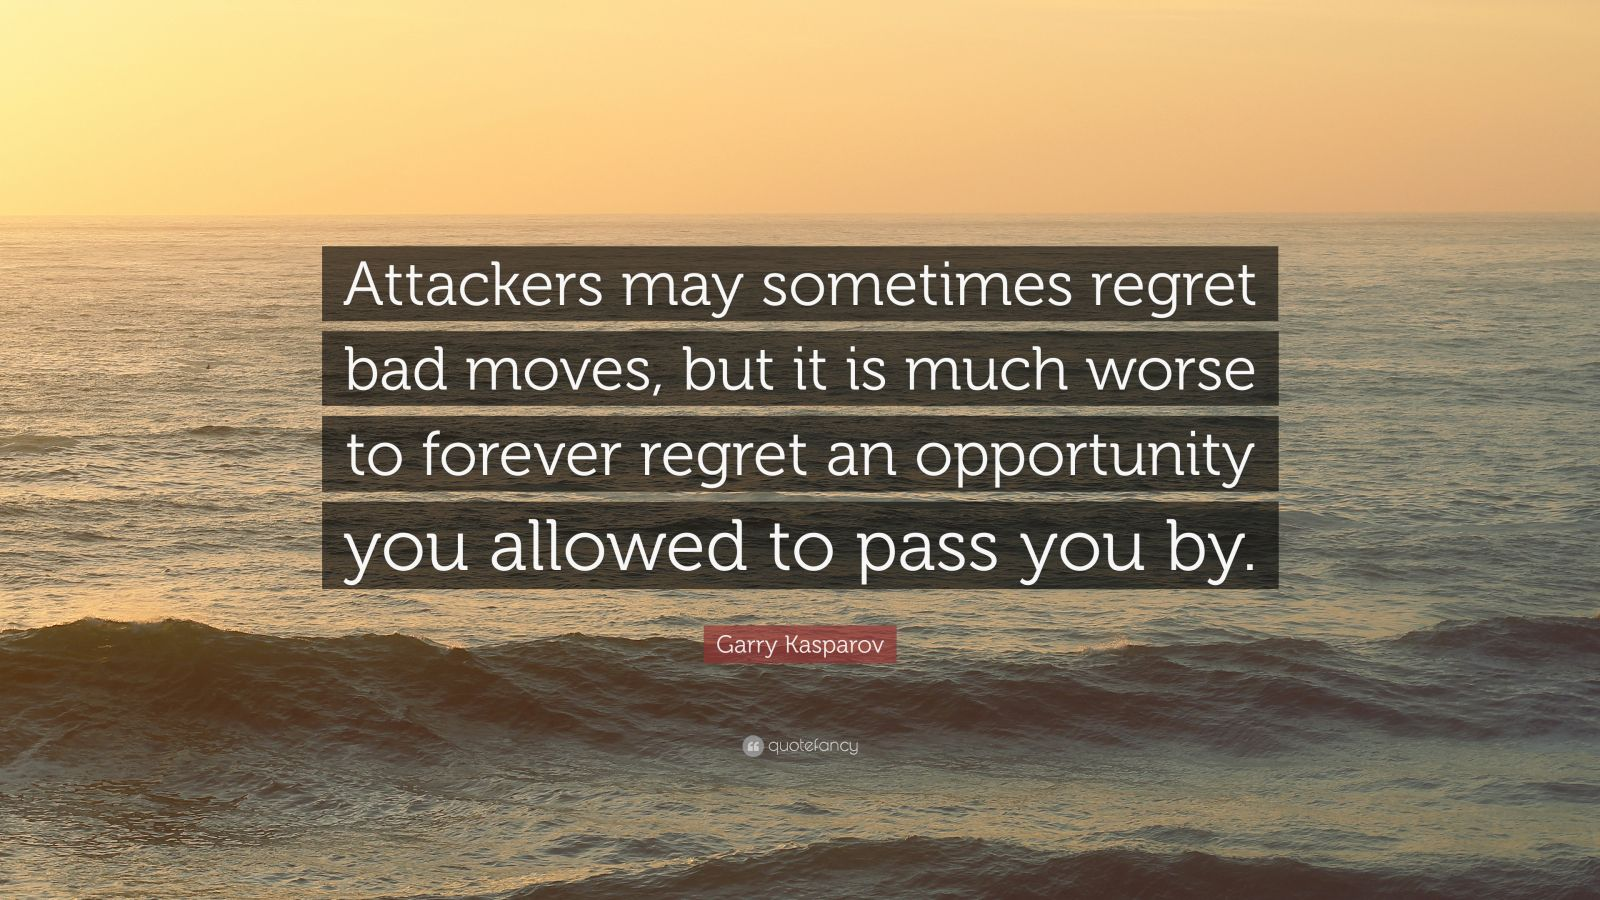 """Garry Kasparov Quote: """"Attackers may sometimes regret bad moves, but it is much worse to forever regret an opportunity you allowed to pass you by."""""""